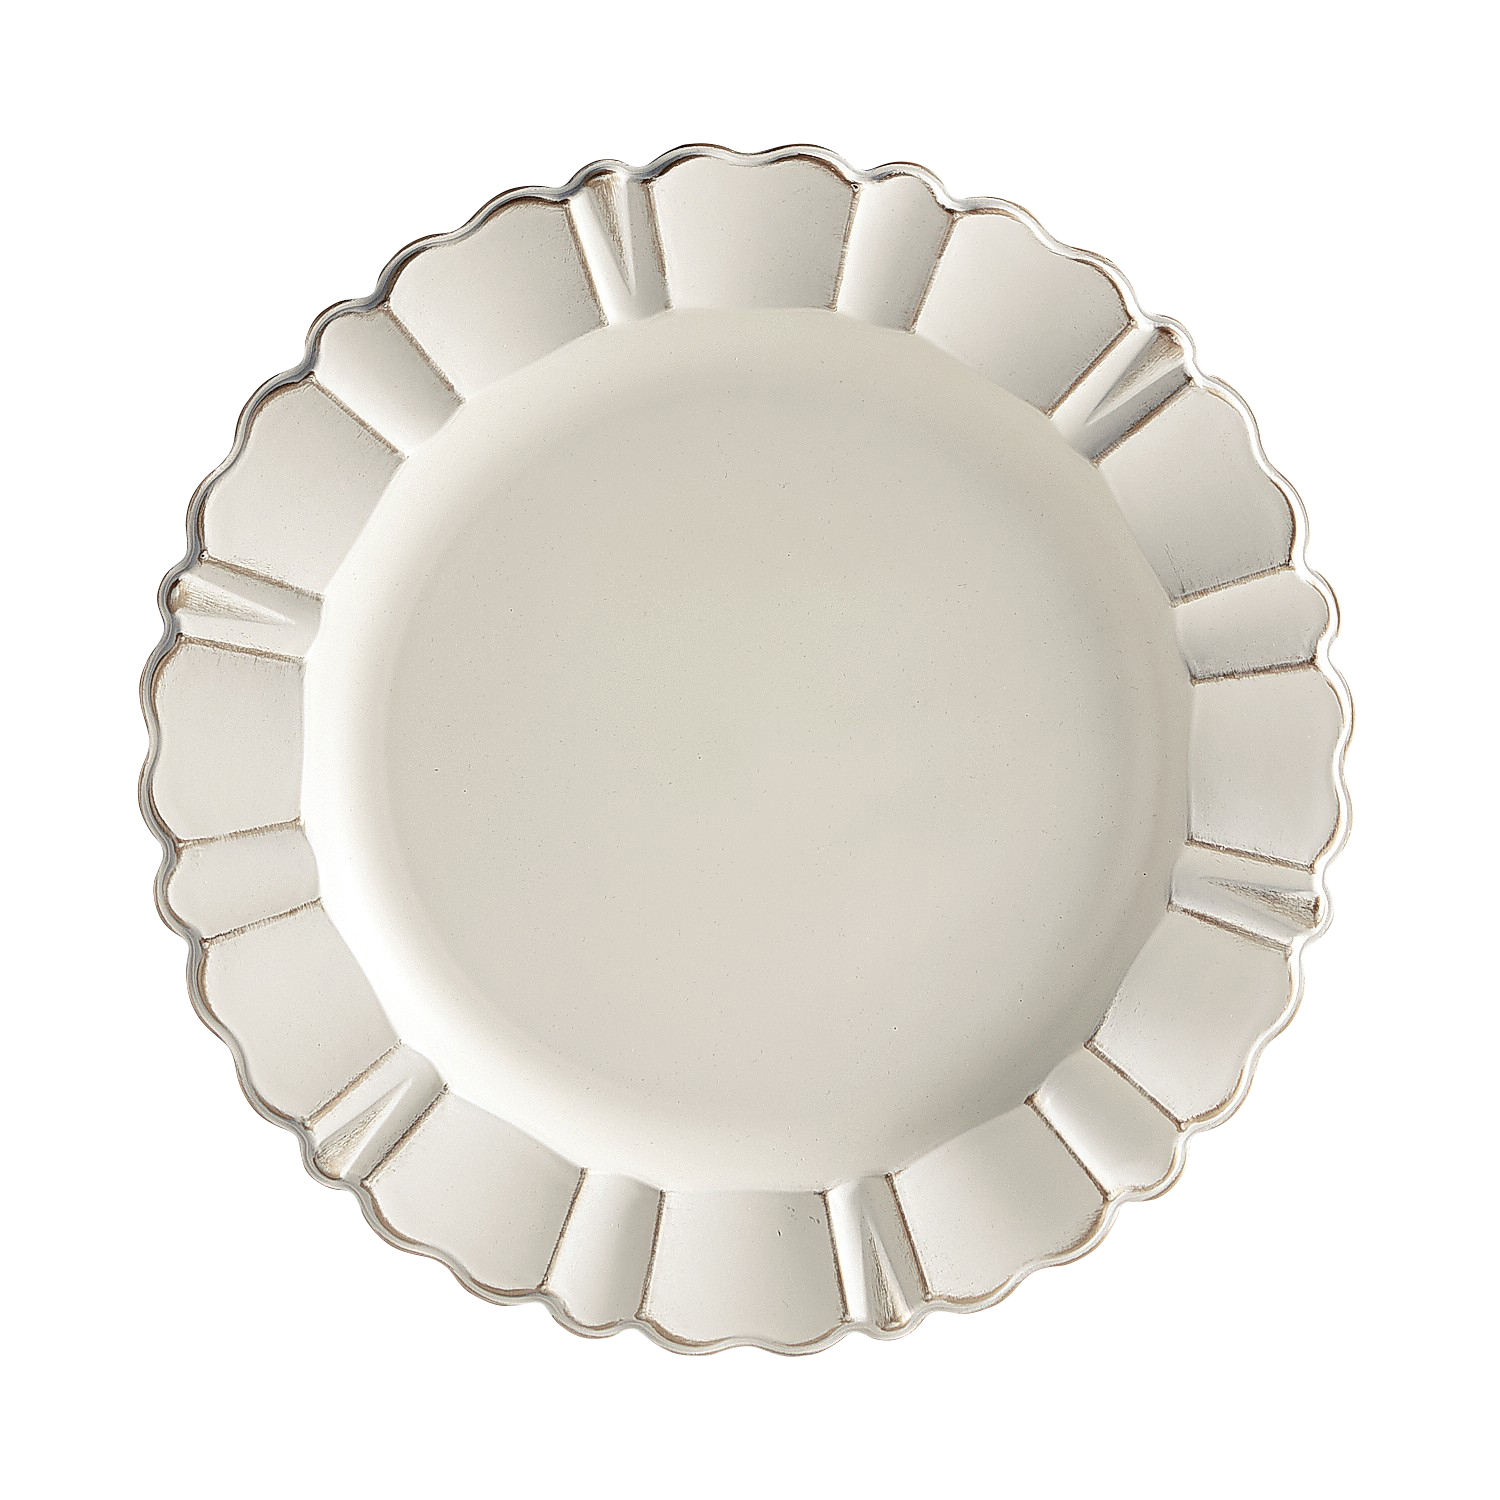 Antiqued Ivory Melamine Scalloped Charger Plate